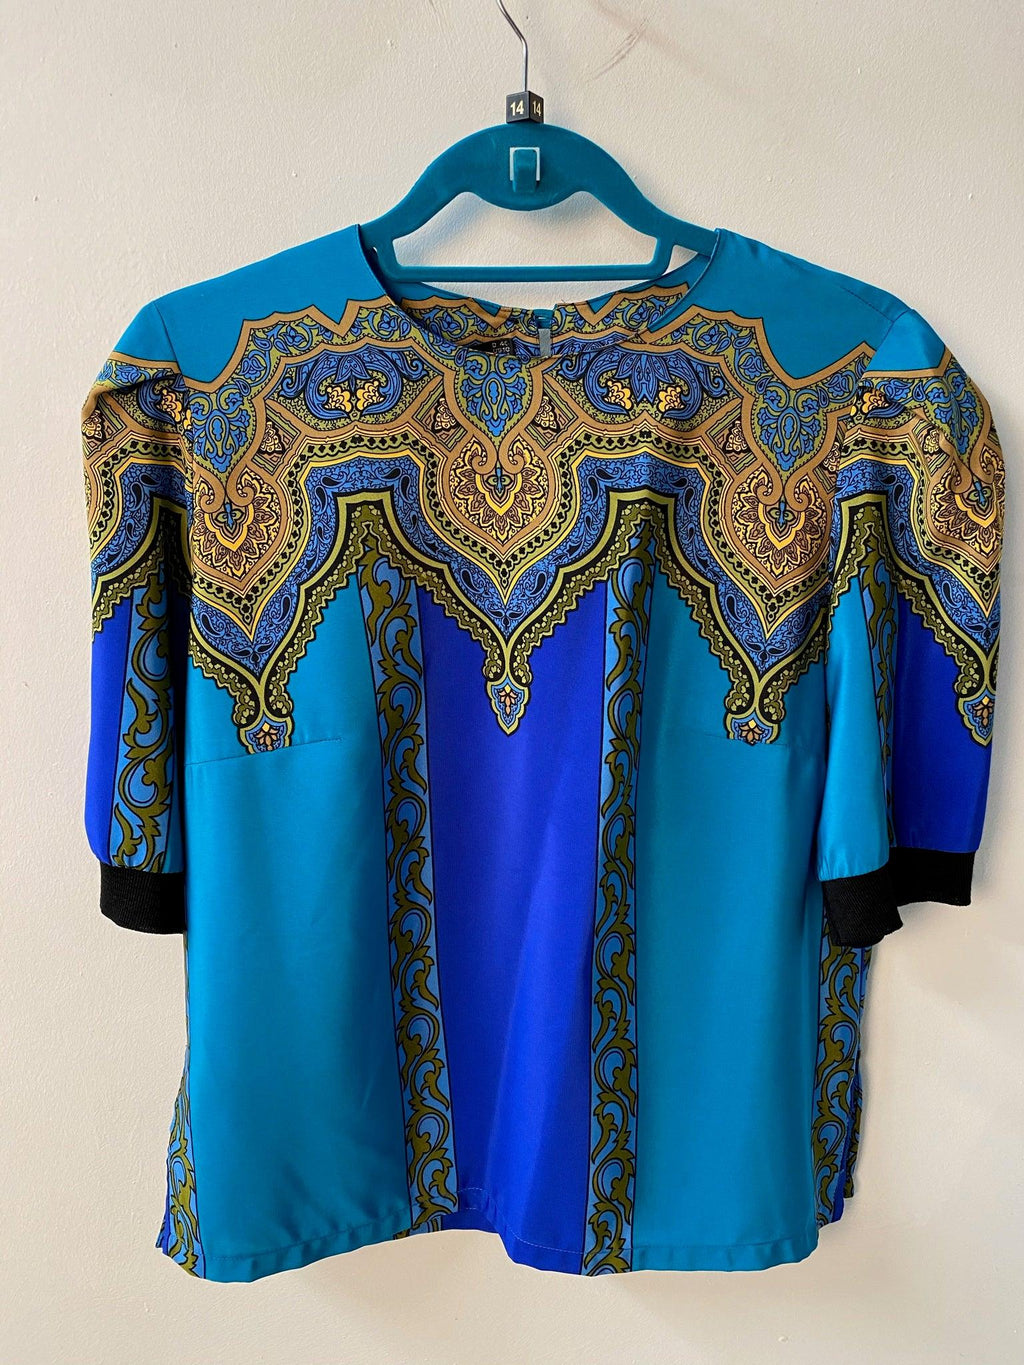 Hardob Short Sleeved Top Silk Turquoise Ethnic Print UK 14